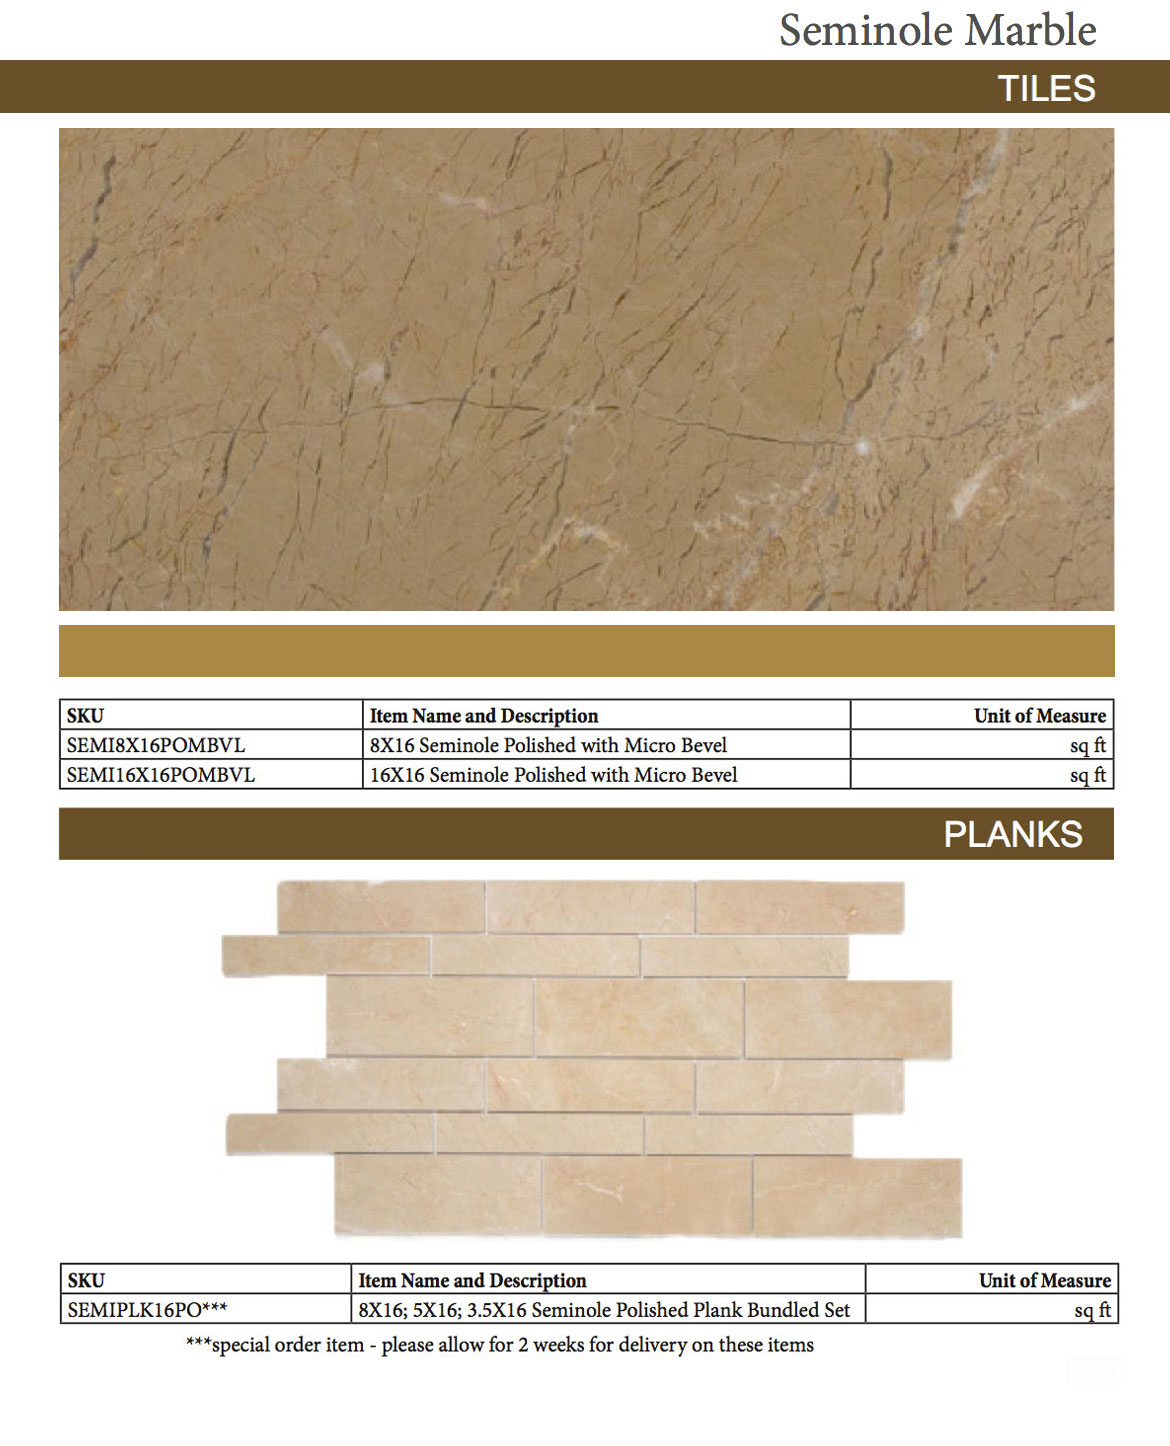 Seminole-Marble-Tiles-and-Planks